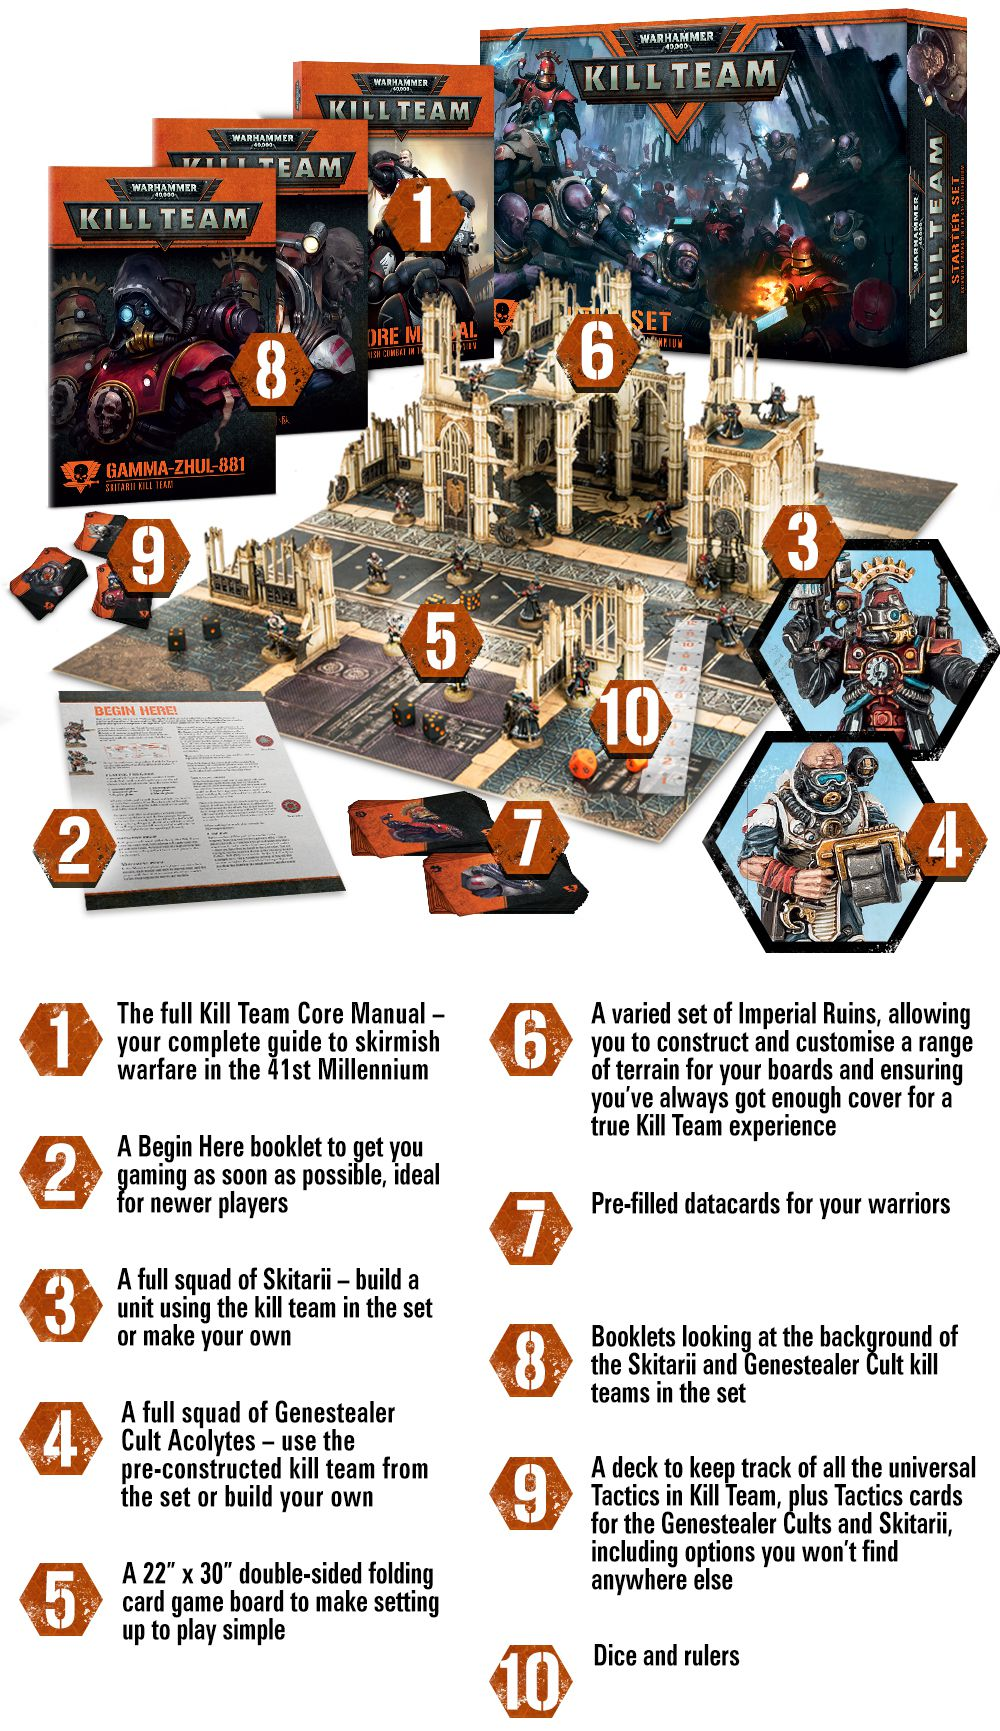 Kill Team is back, and it's time to start paying attention to